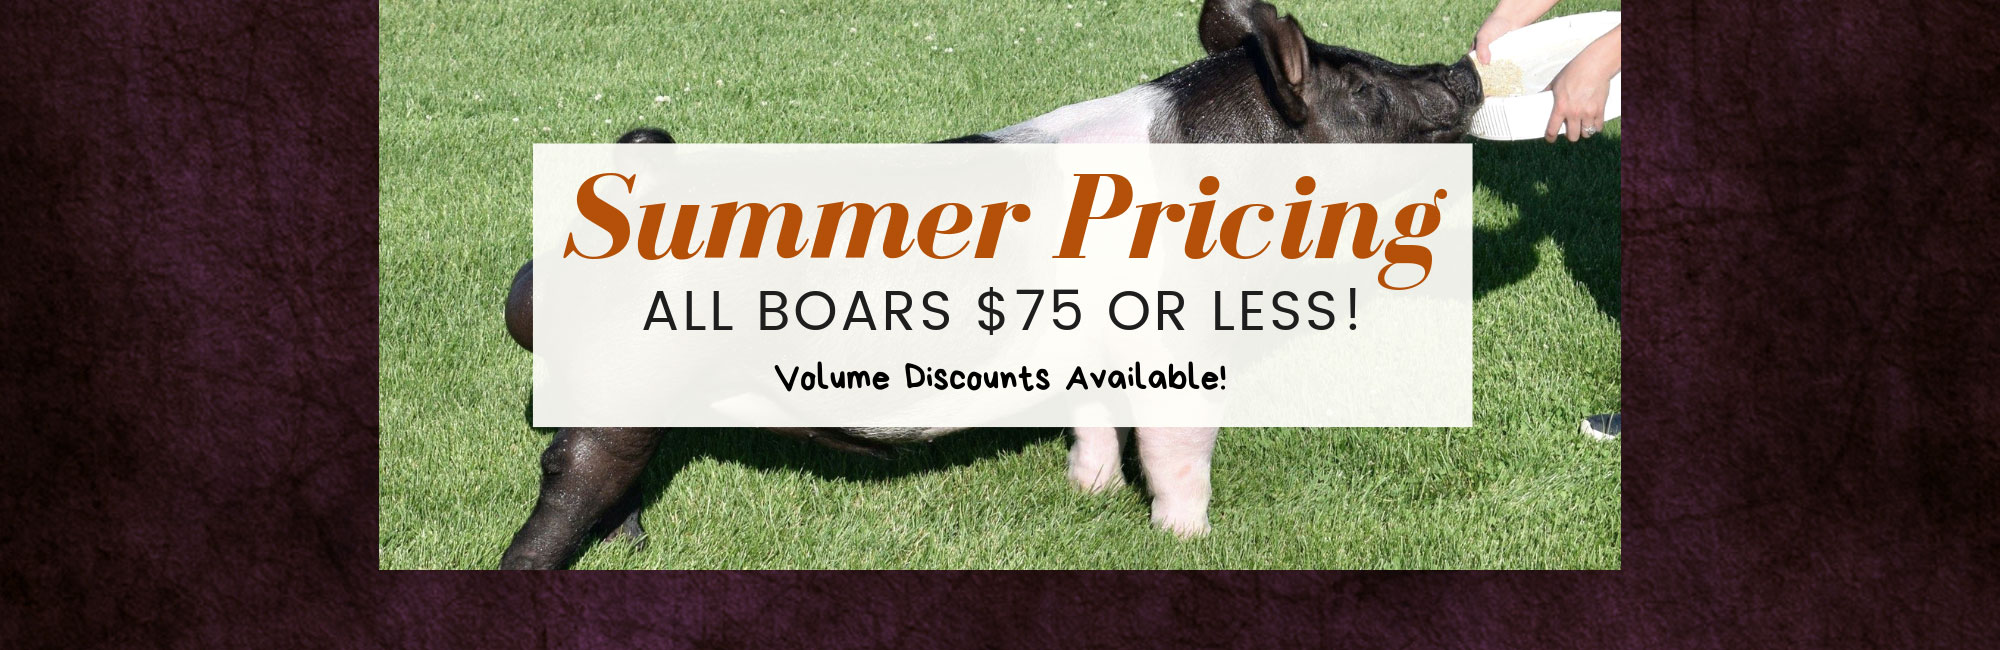 Summer Pricing